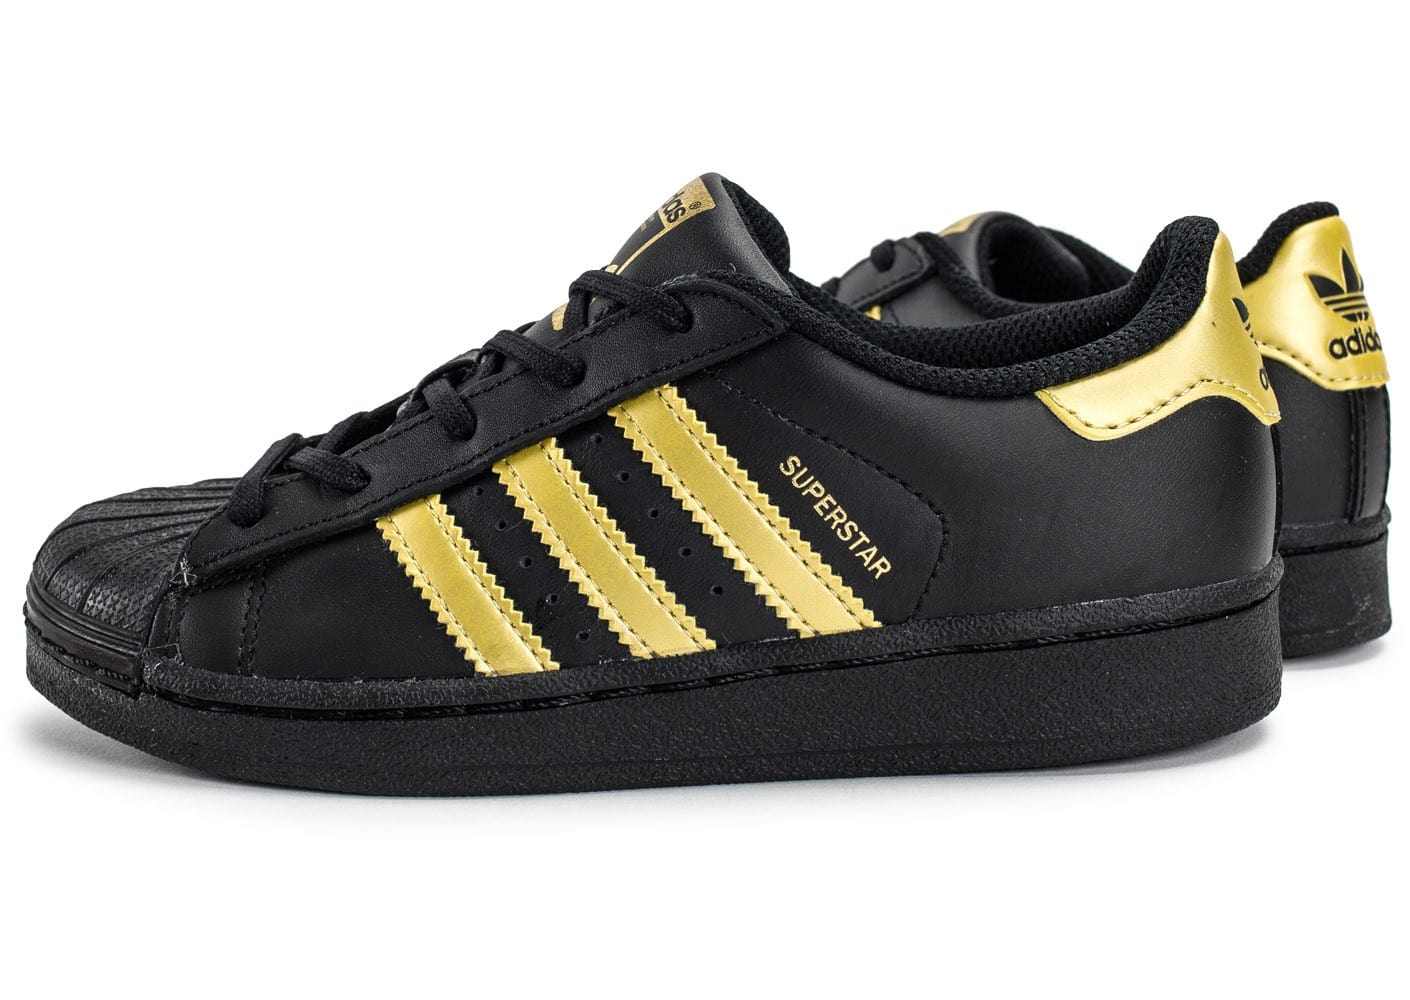 adidas superstar enfant black gold chaussures adidas. Black Bedroom Furniture Sets. Home Design Ideas